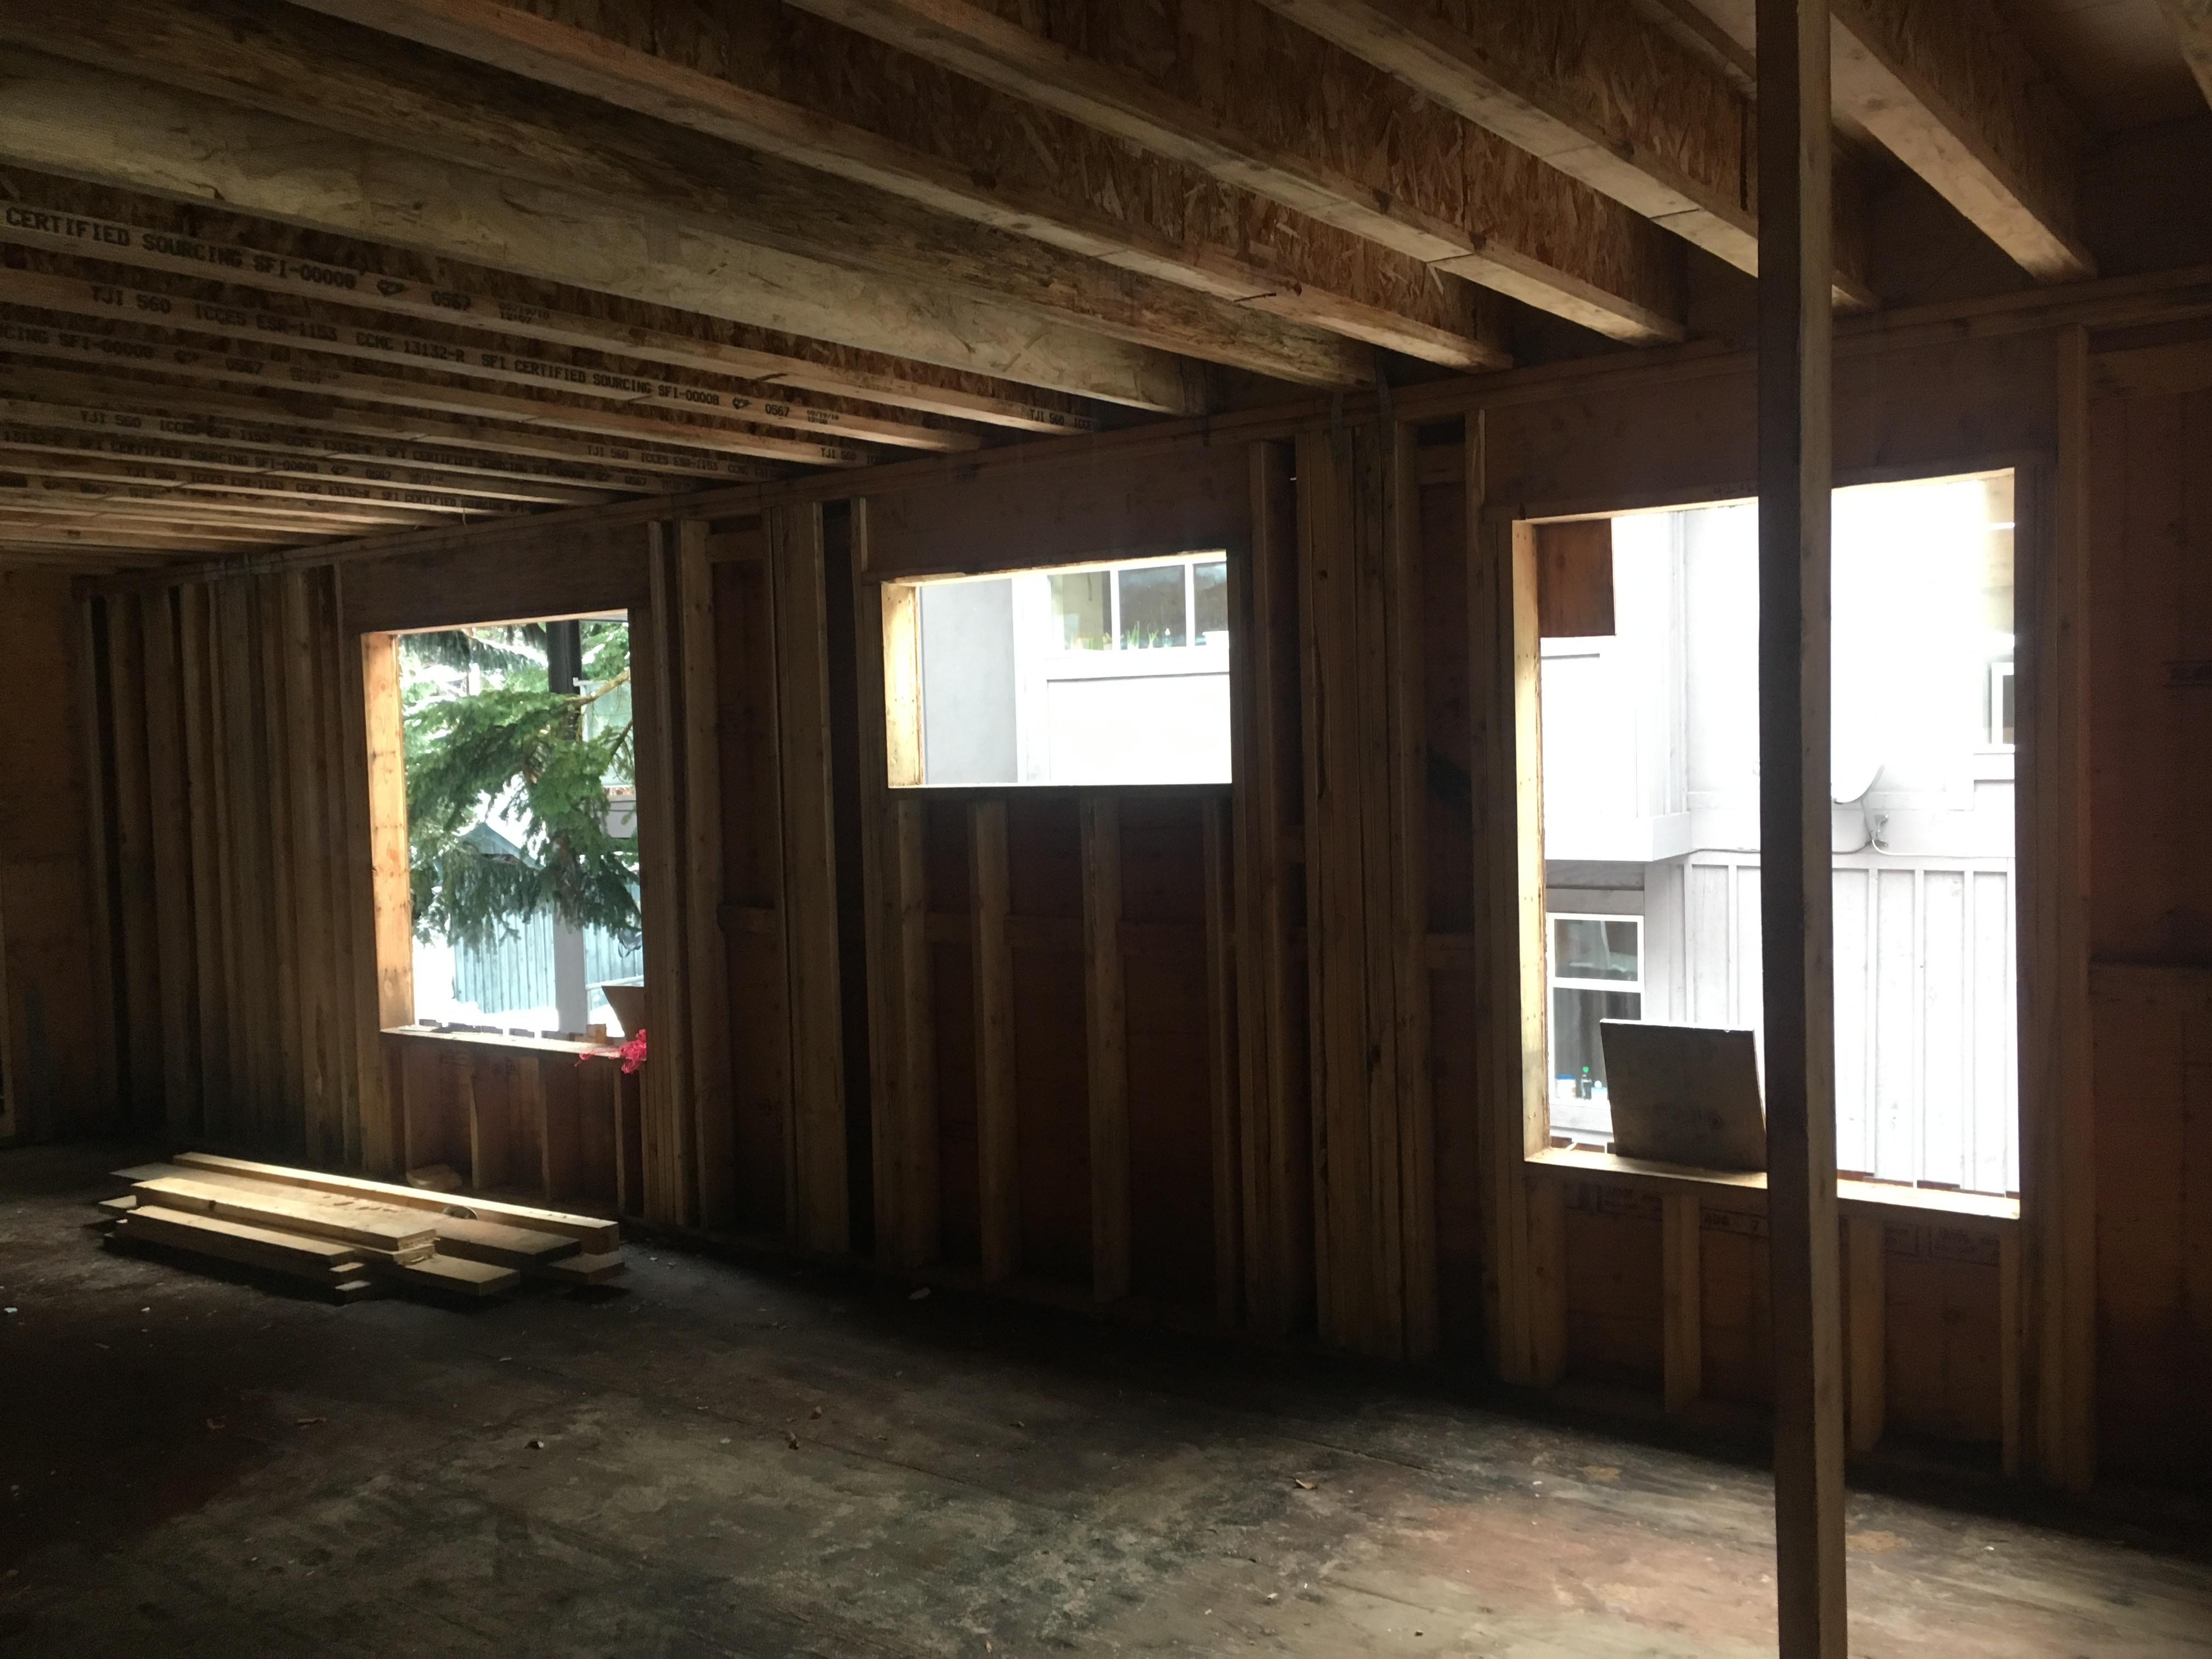 Pound 4 Pound, Framing and Forming, inside walls framing